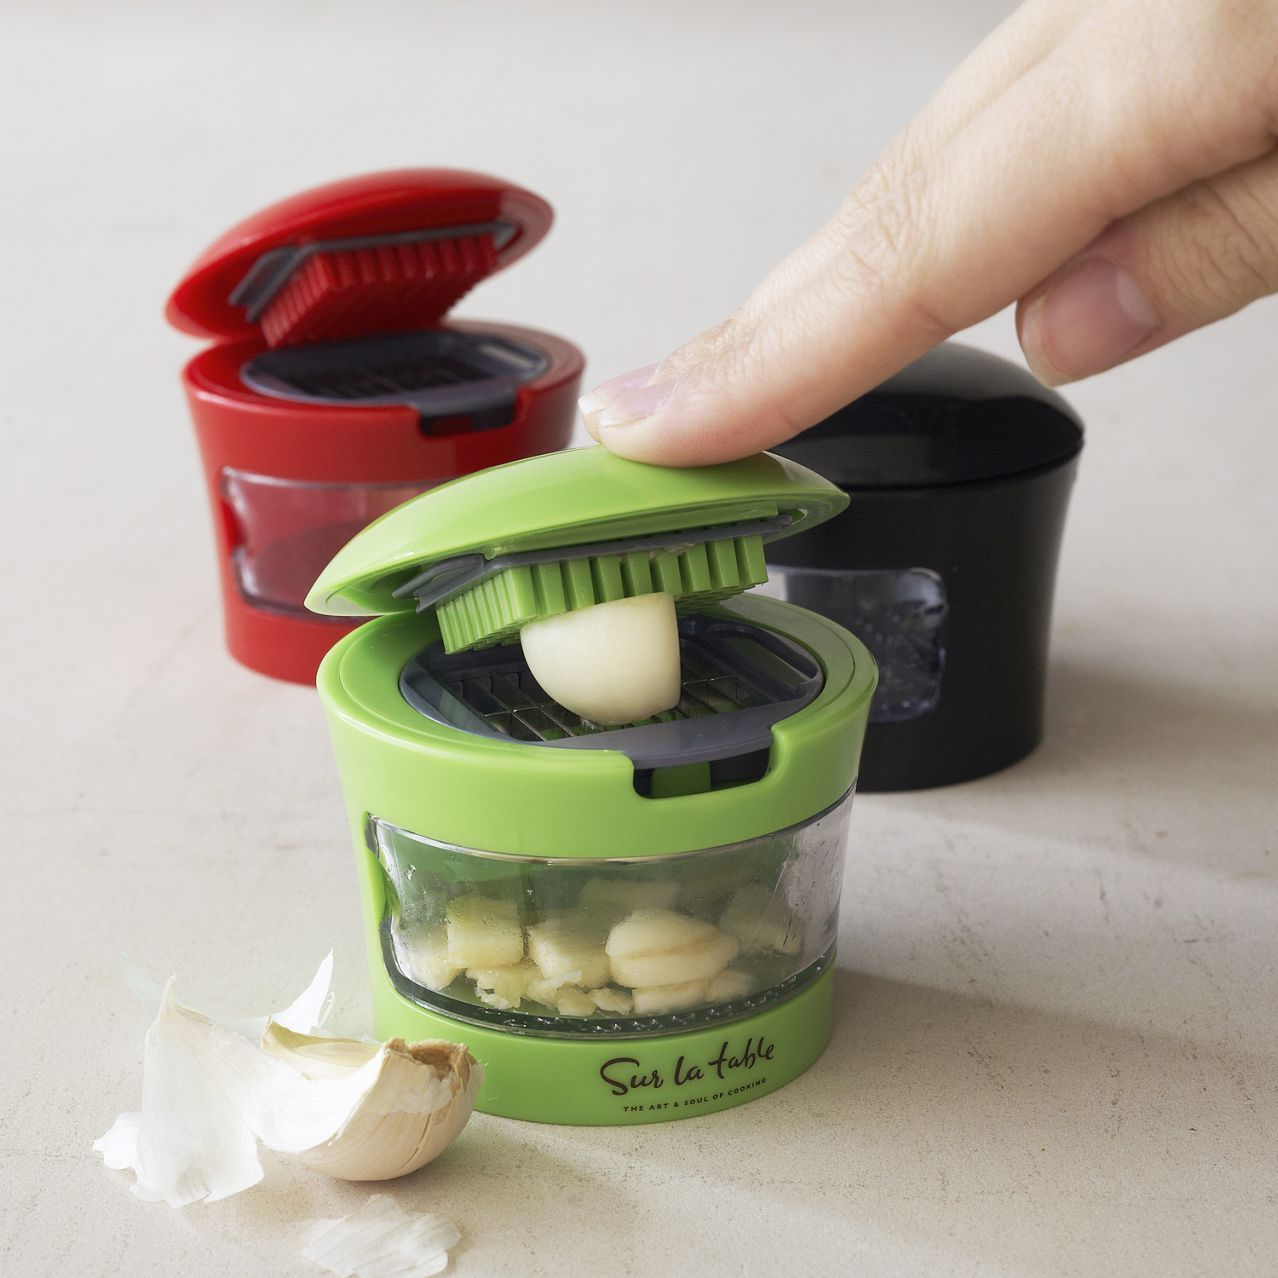 Garlic press Sur la Table Jolene Klassen Klassen Klassen Klassen Peixoto this is an…